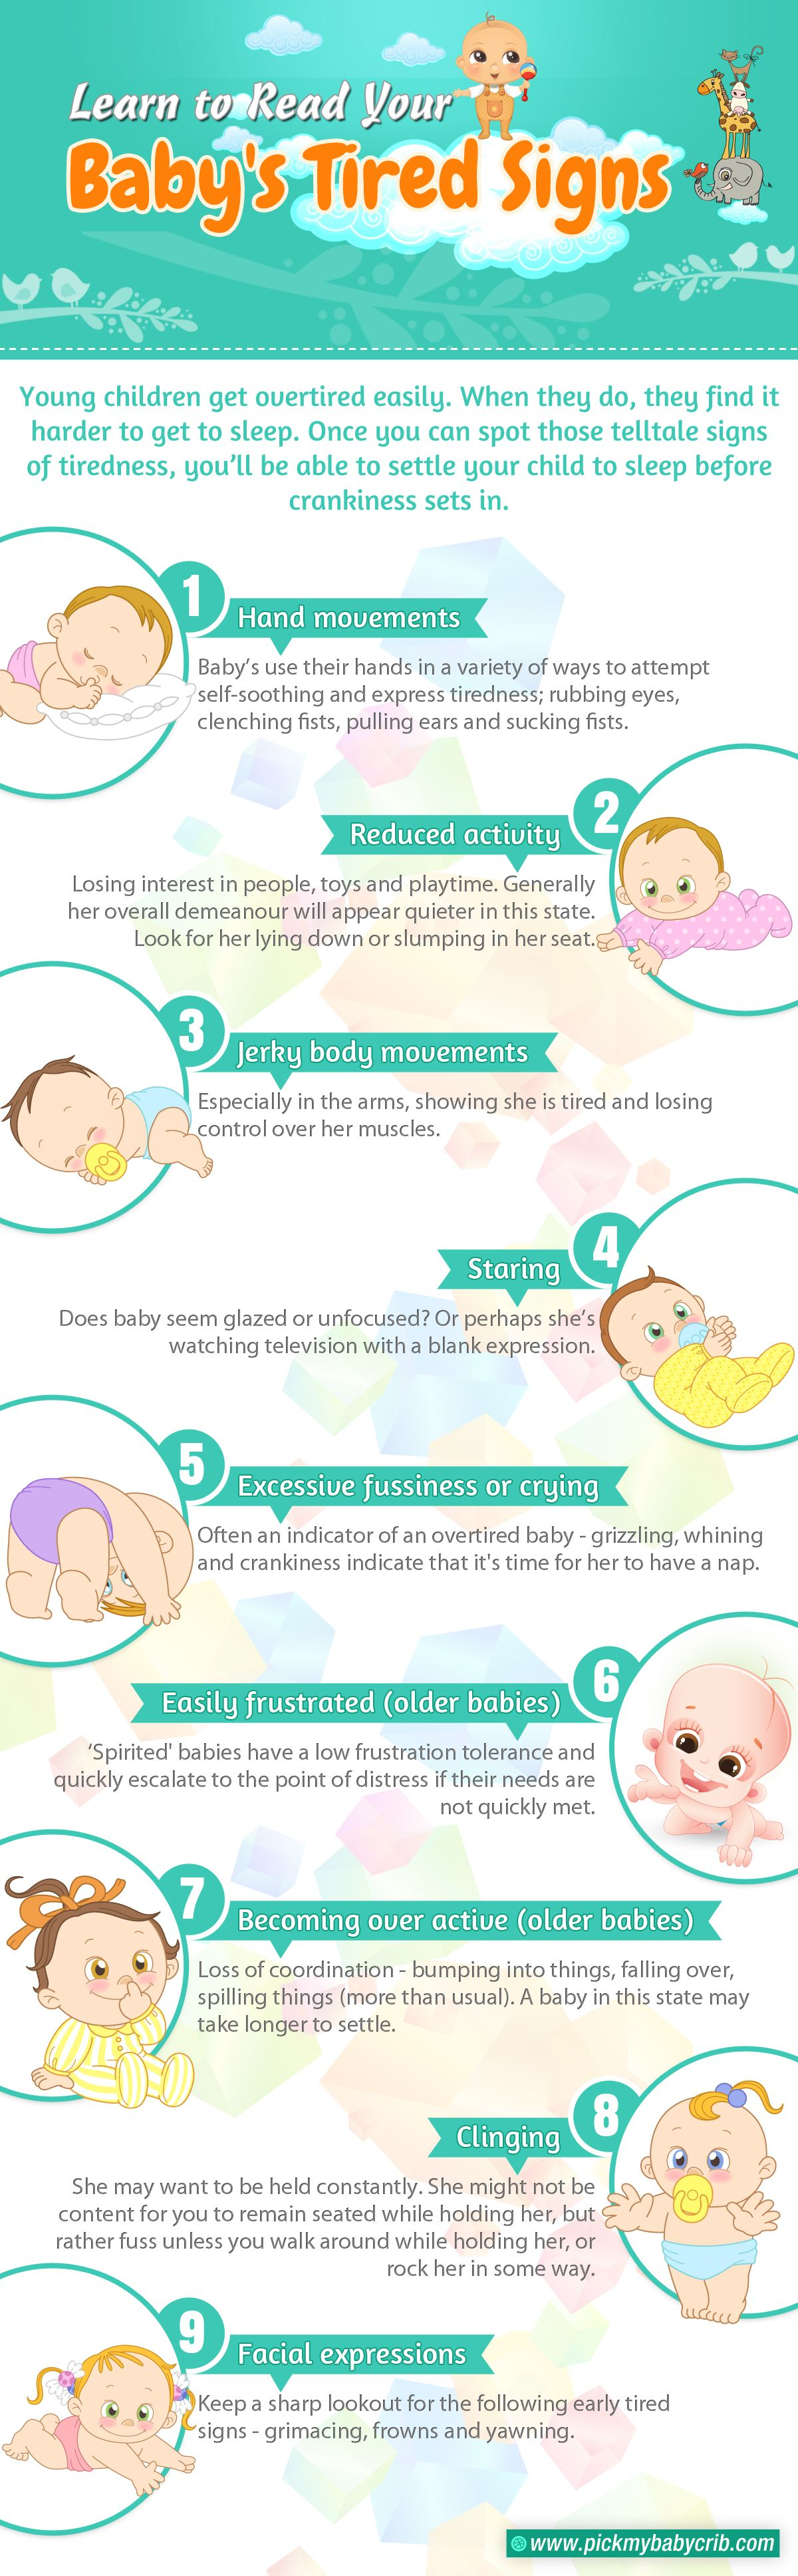 Learn_to_Read_Your_Babys_Tired_Signs-infographic